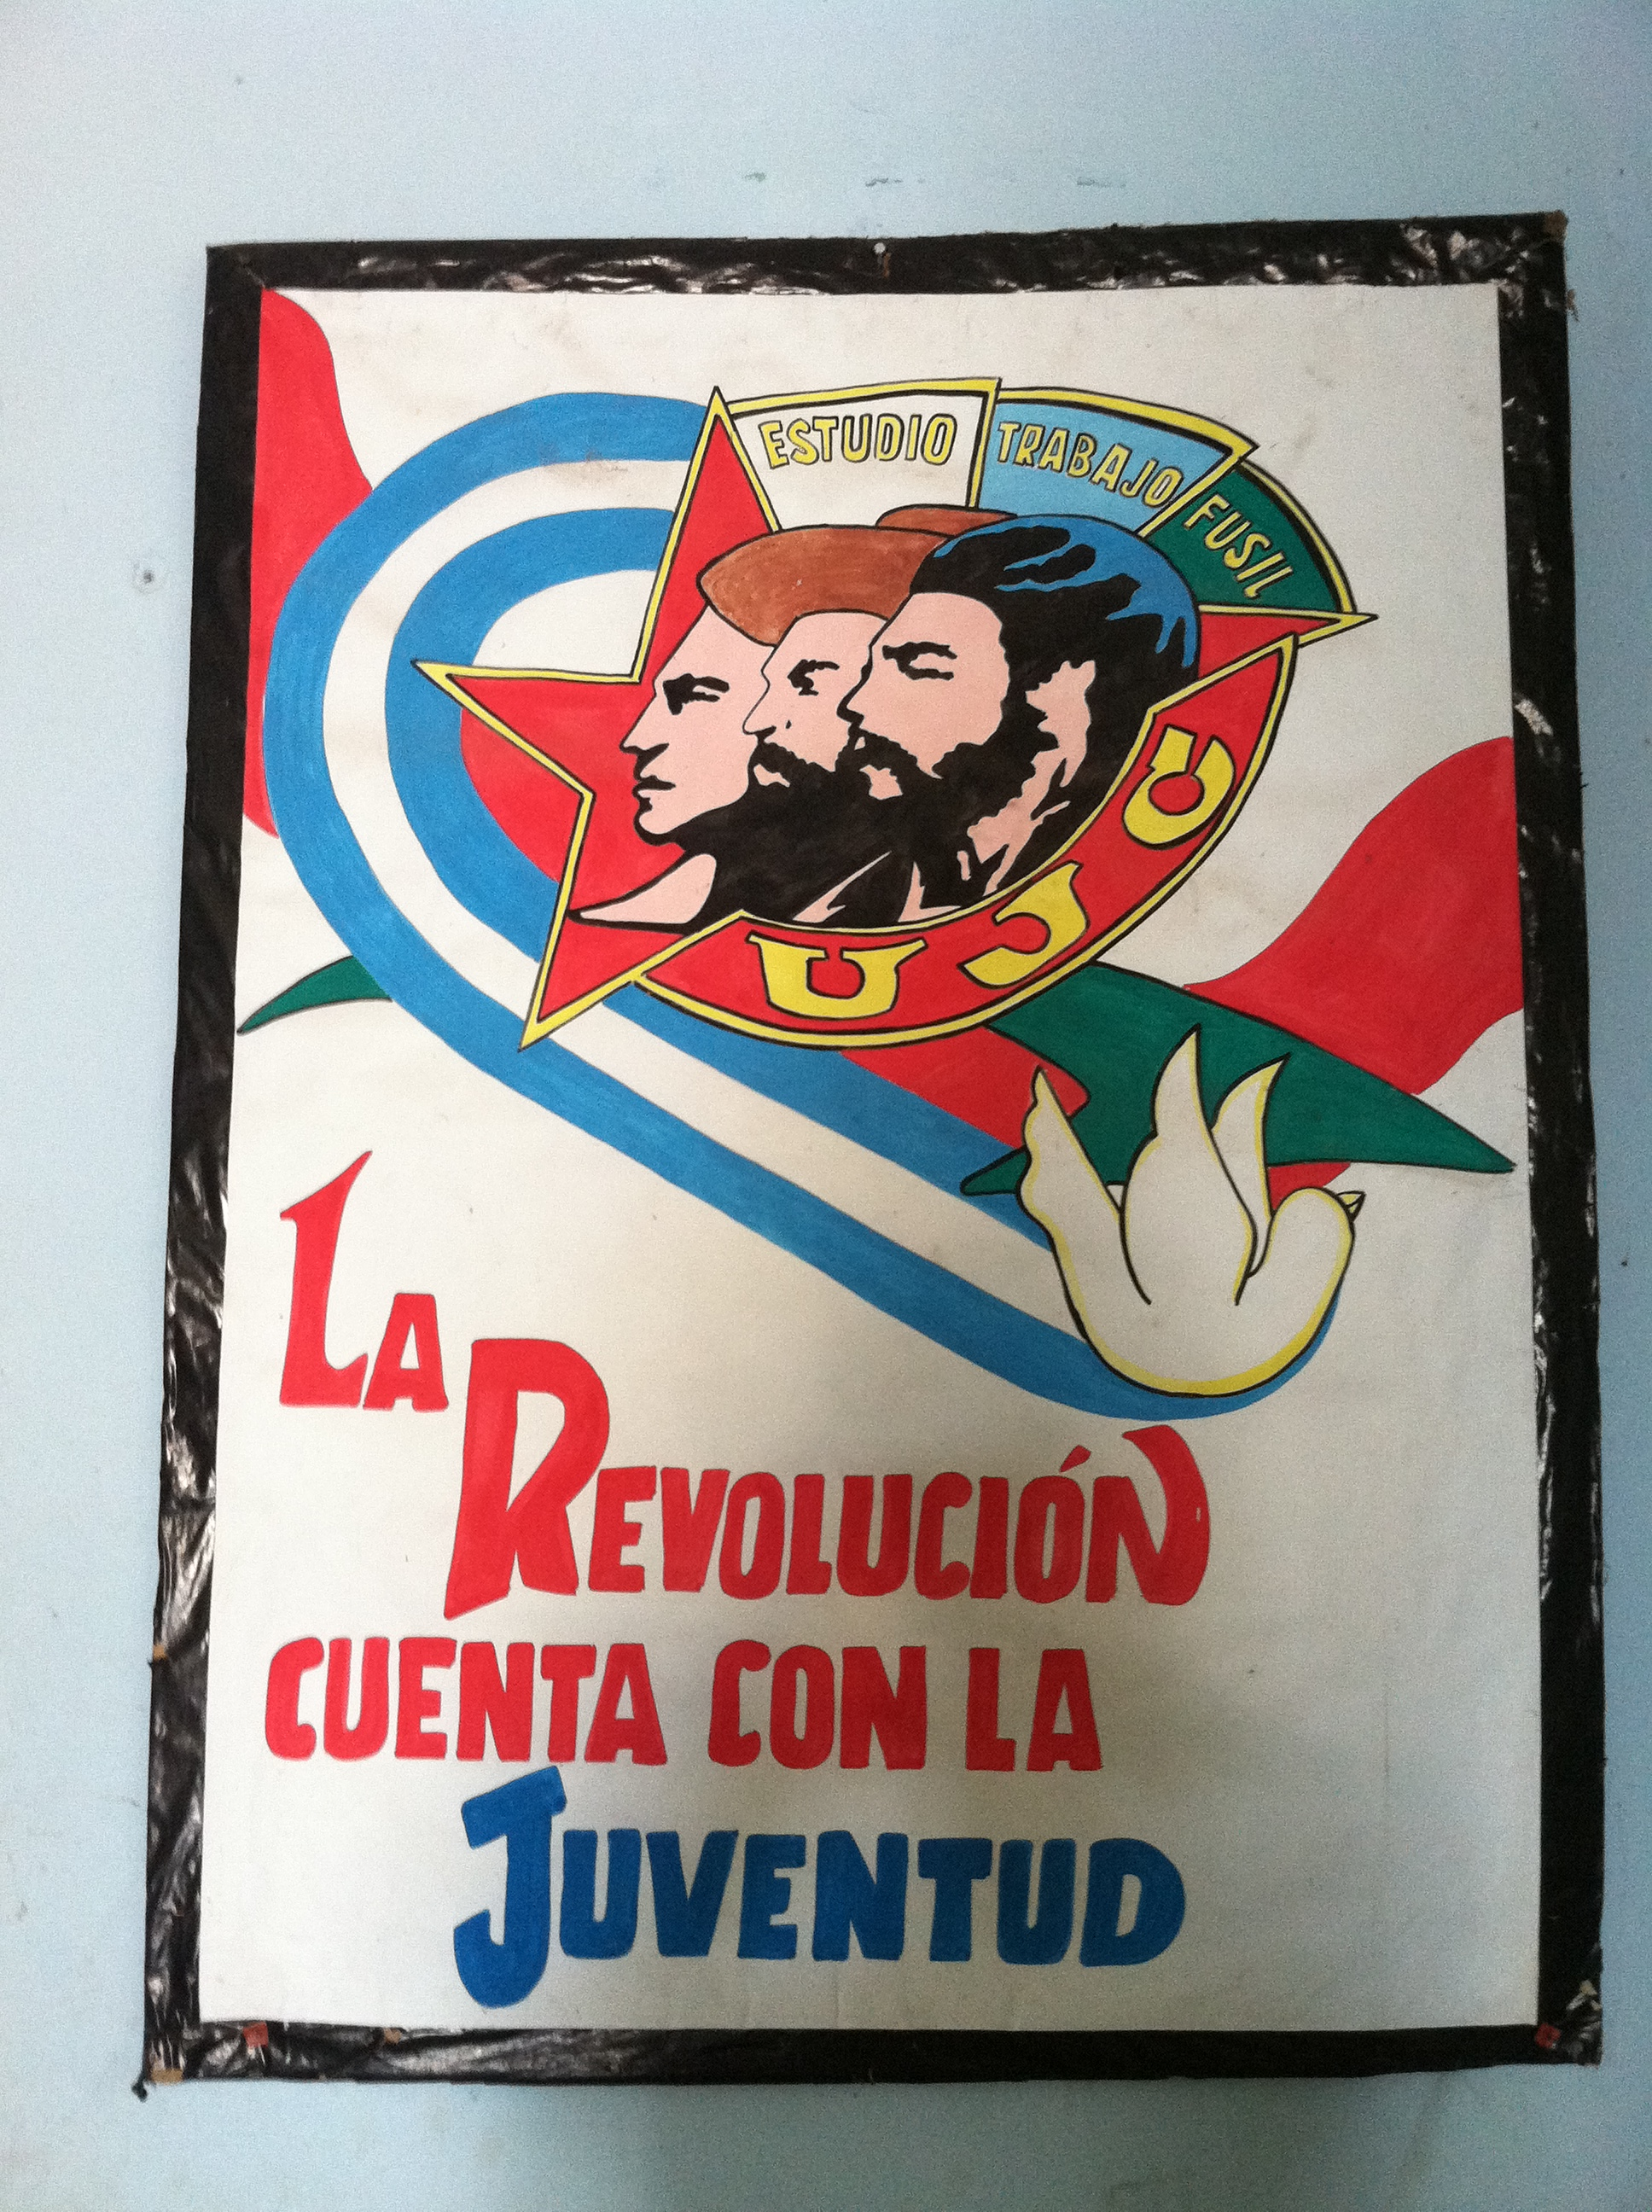 Viva La Revolucion - Long live the Revolution poster.